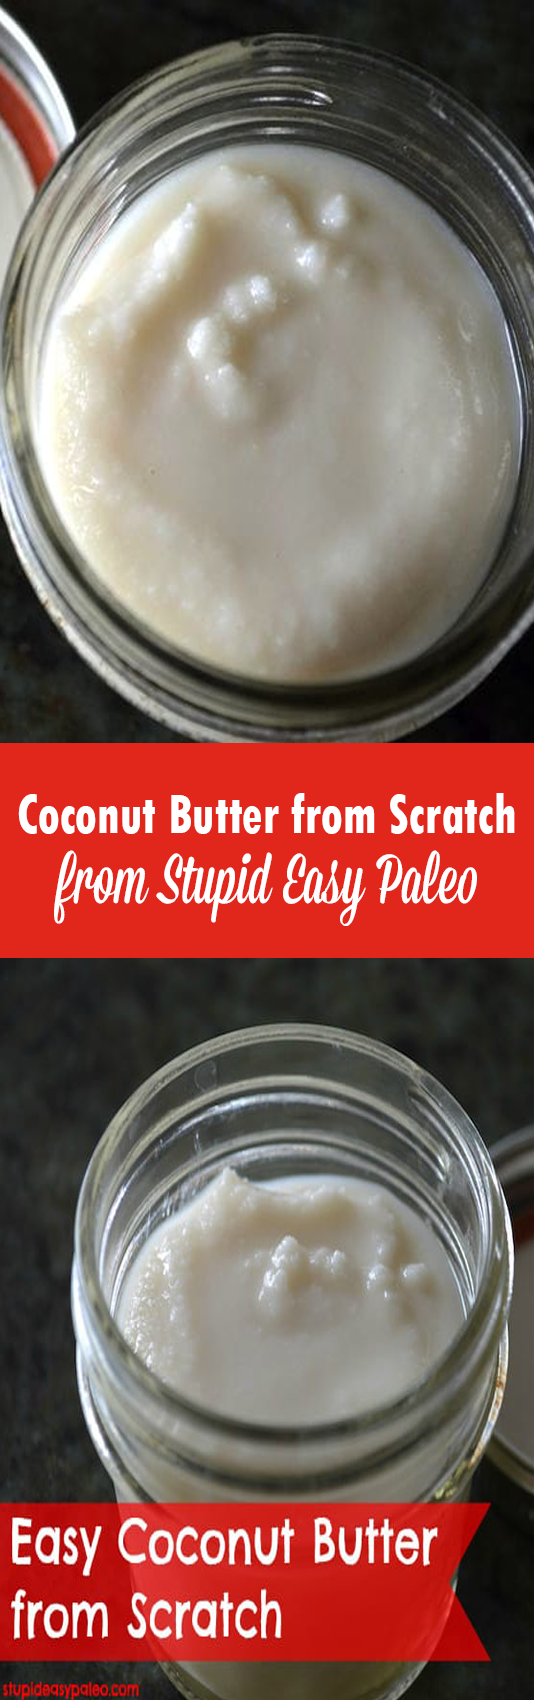 Coconut Butter from Scratch   StupidEasyPaleo.com